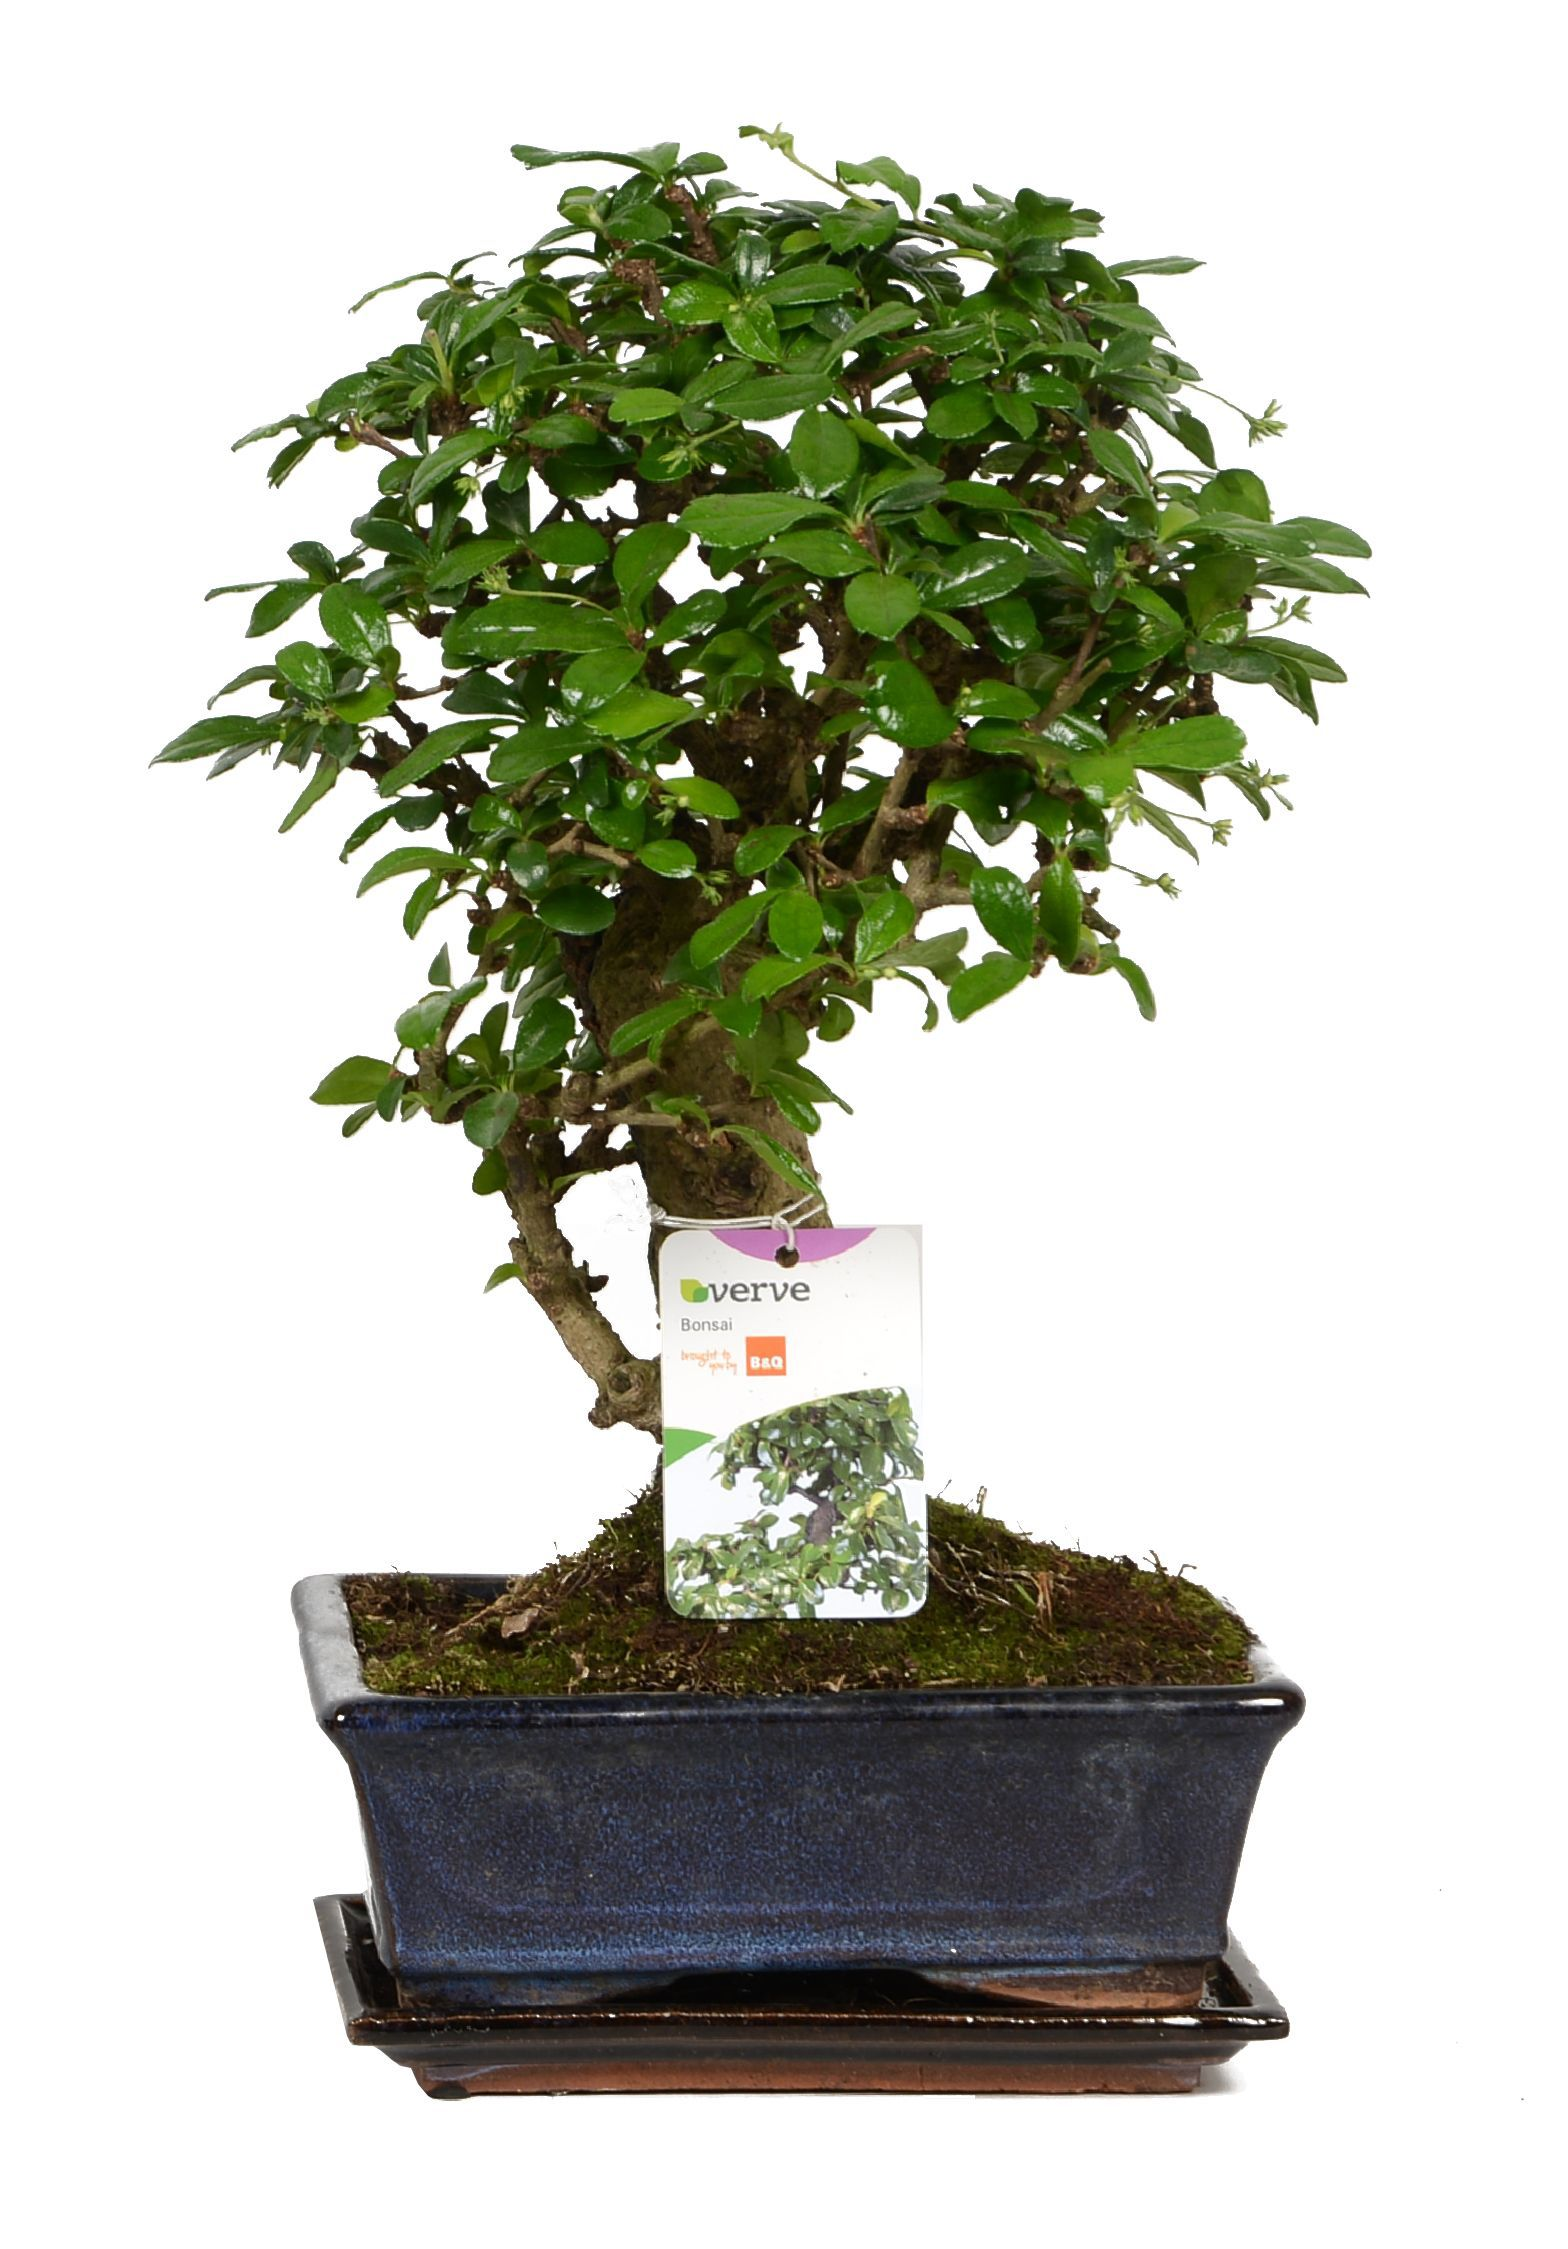 Verve Large Bonsai In Ceramic Pot Departments Diy At B Amp Q